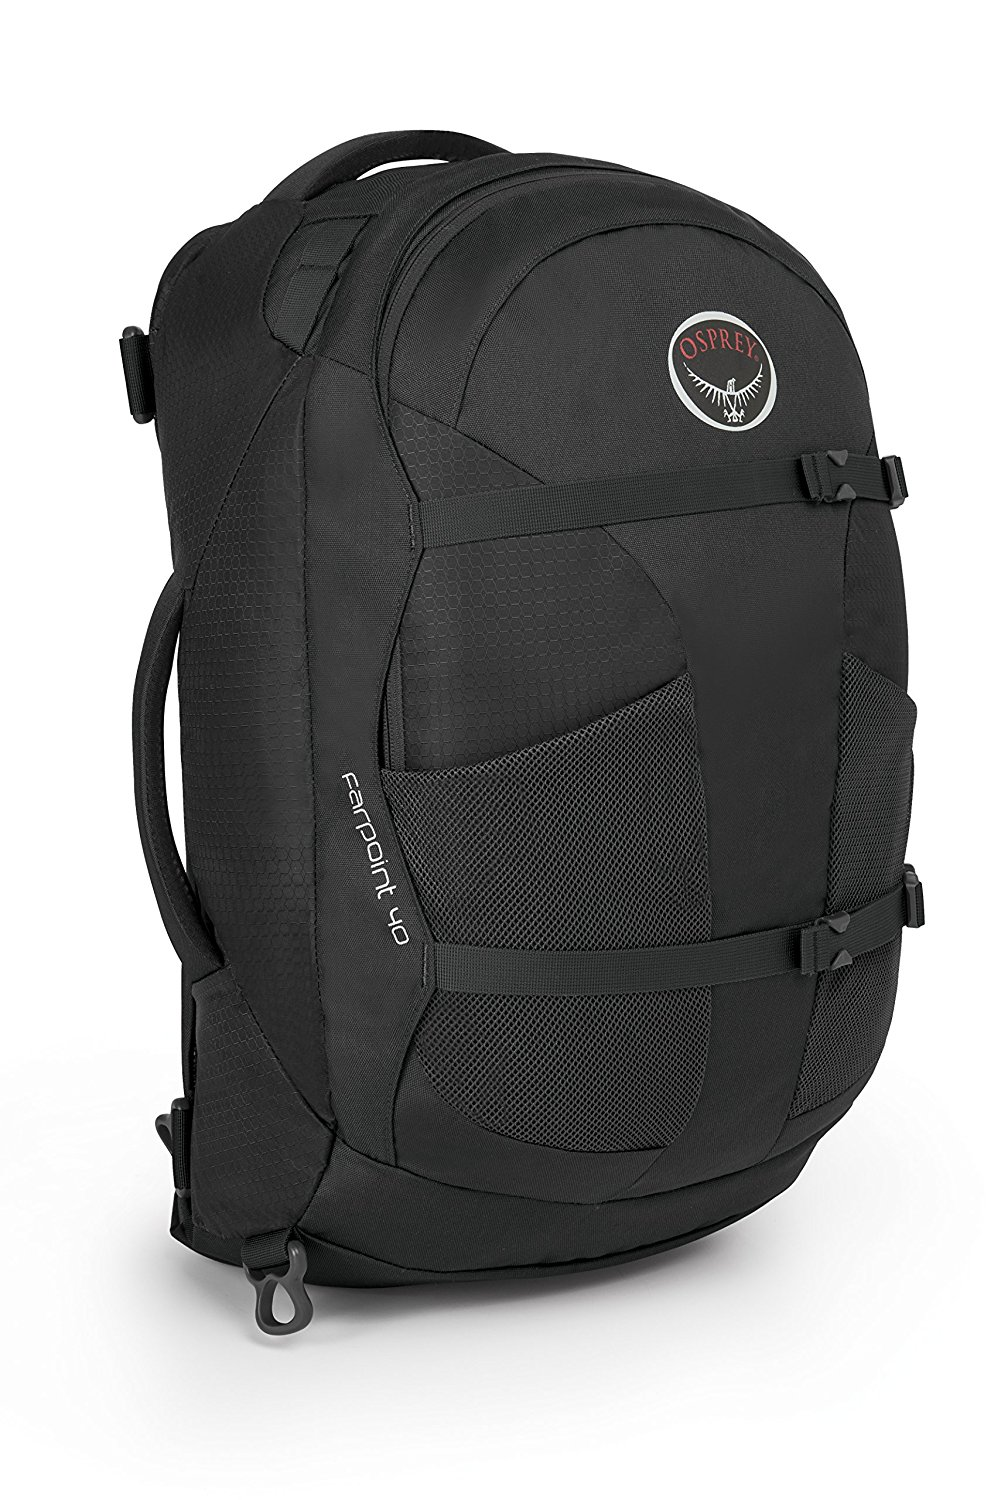 Osprey Farpoint 40 Carry On Travel Backpack – Available in 3 Colors & 2 Sizes